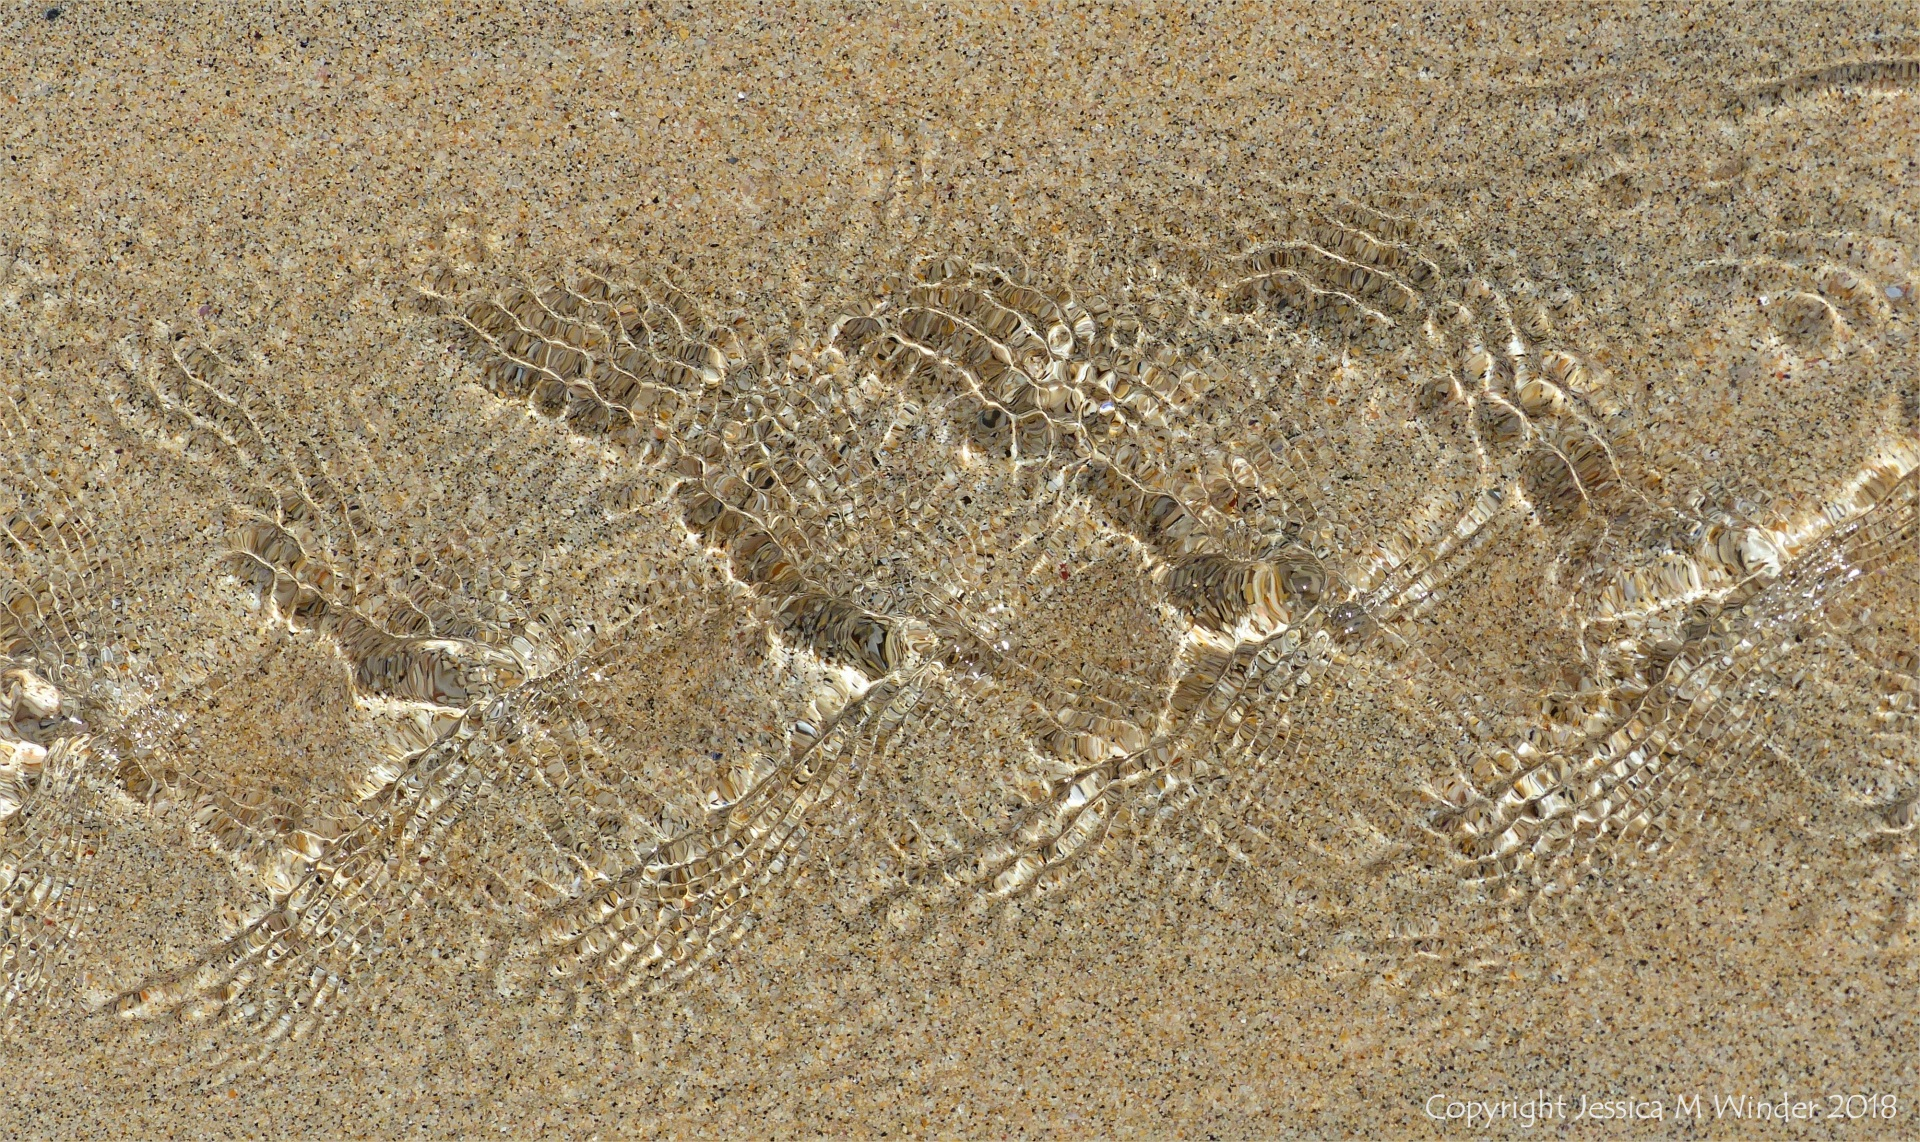 Patterns in a stream